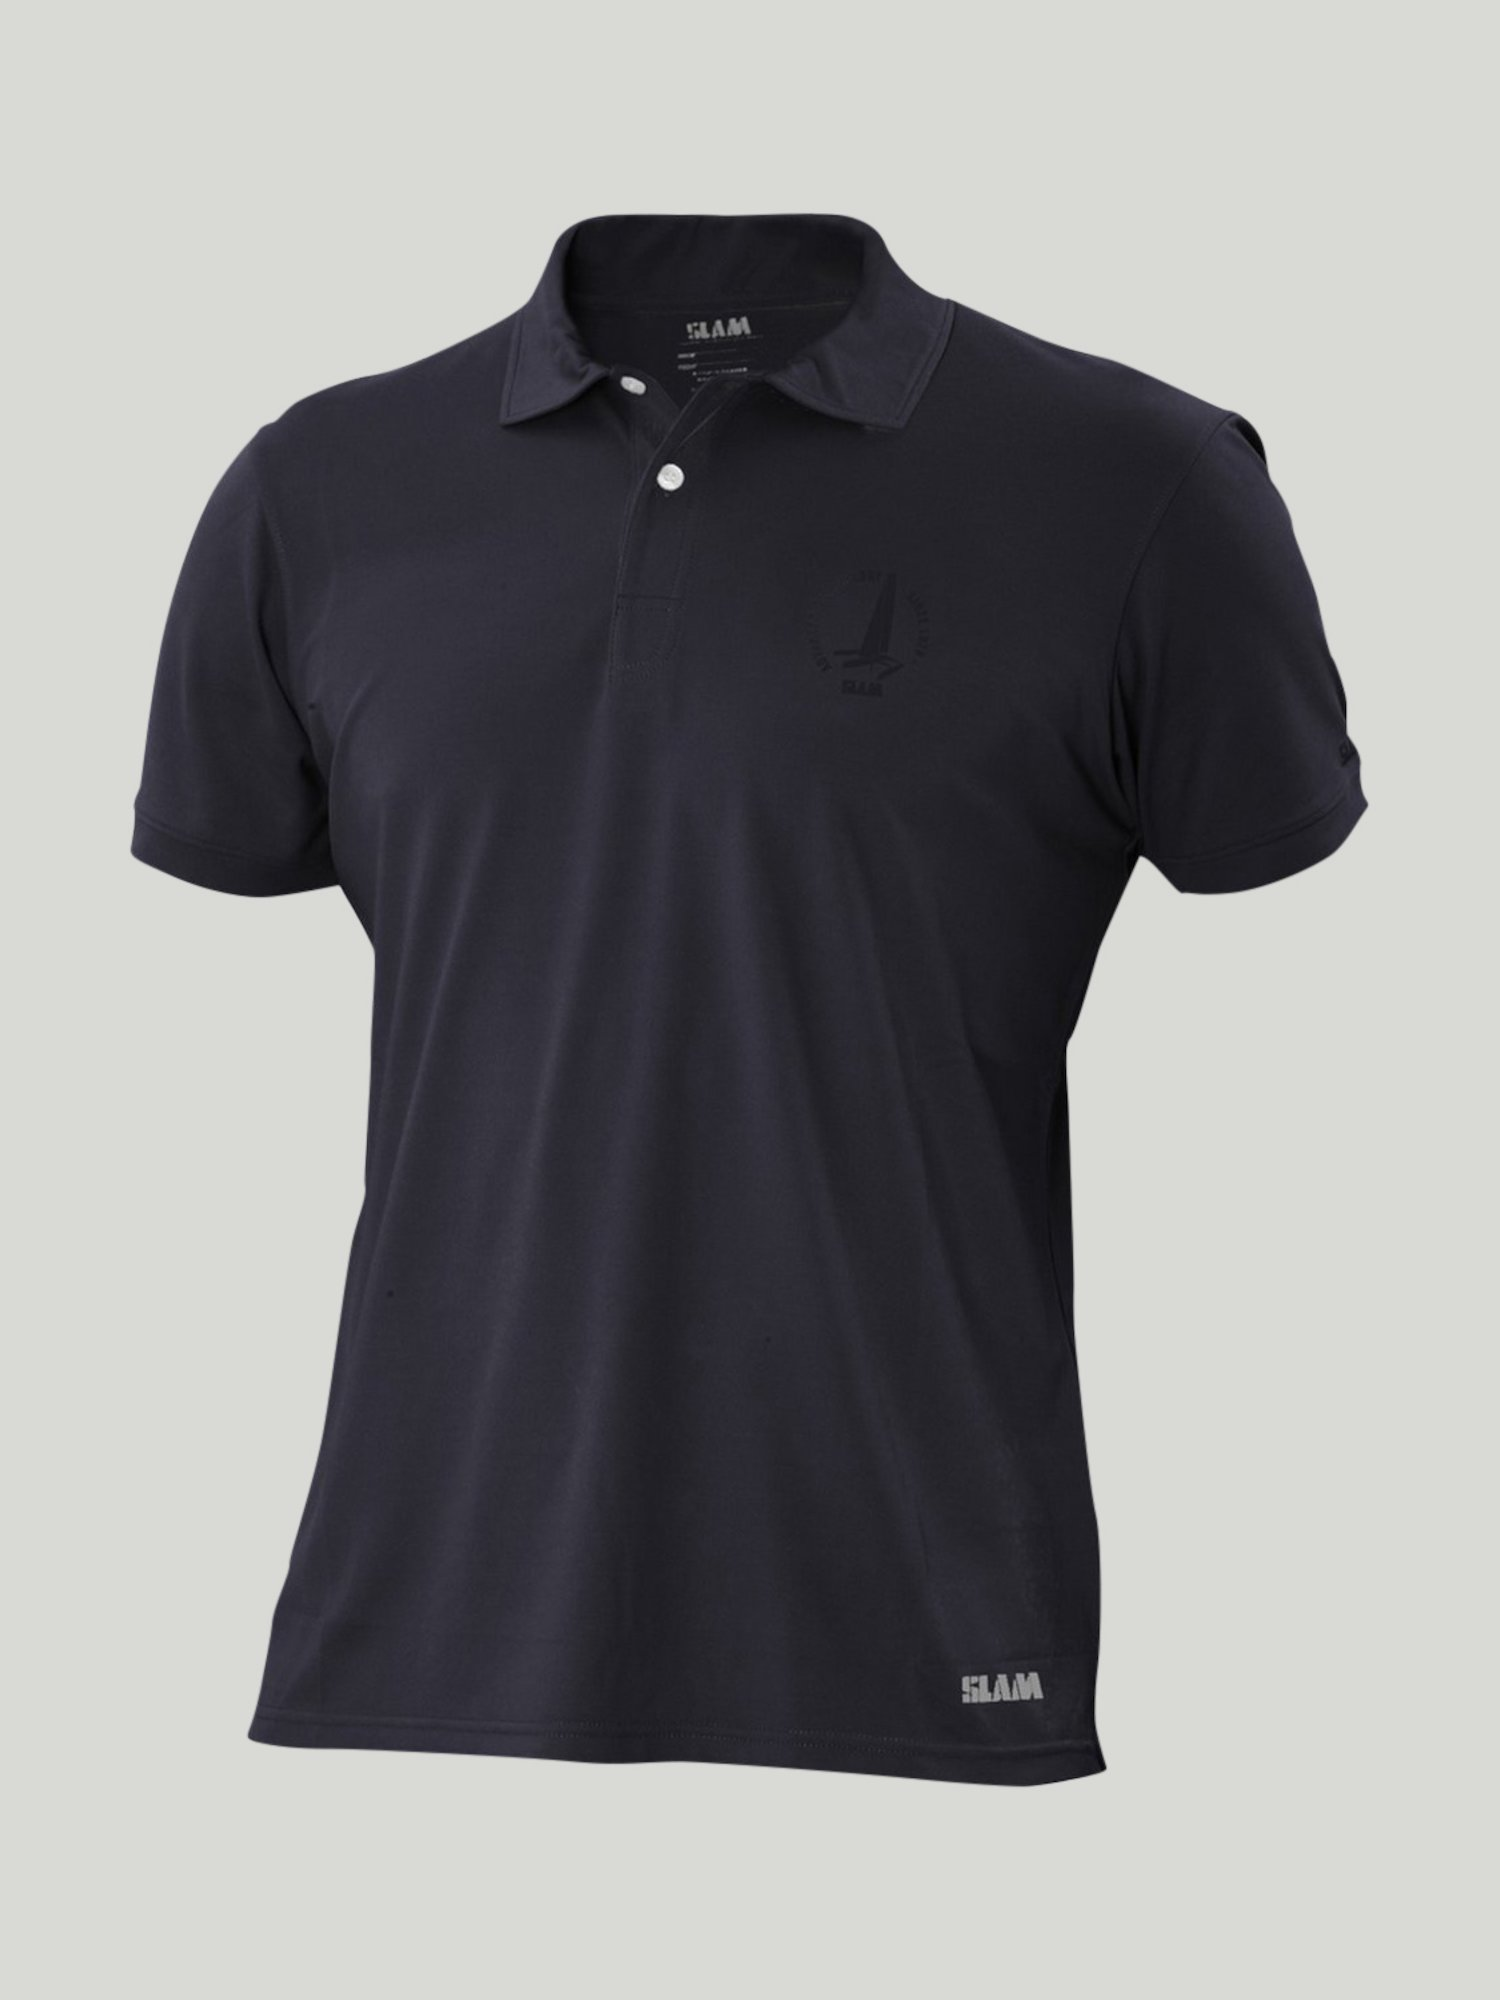 Paterson Ss polo shirt  - Navy